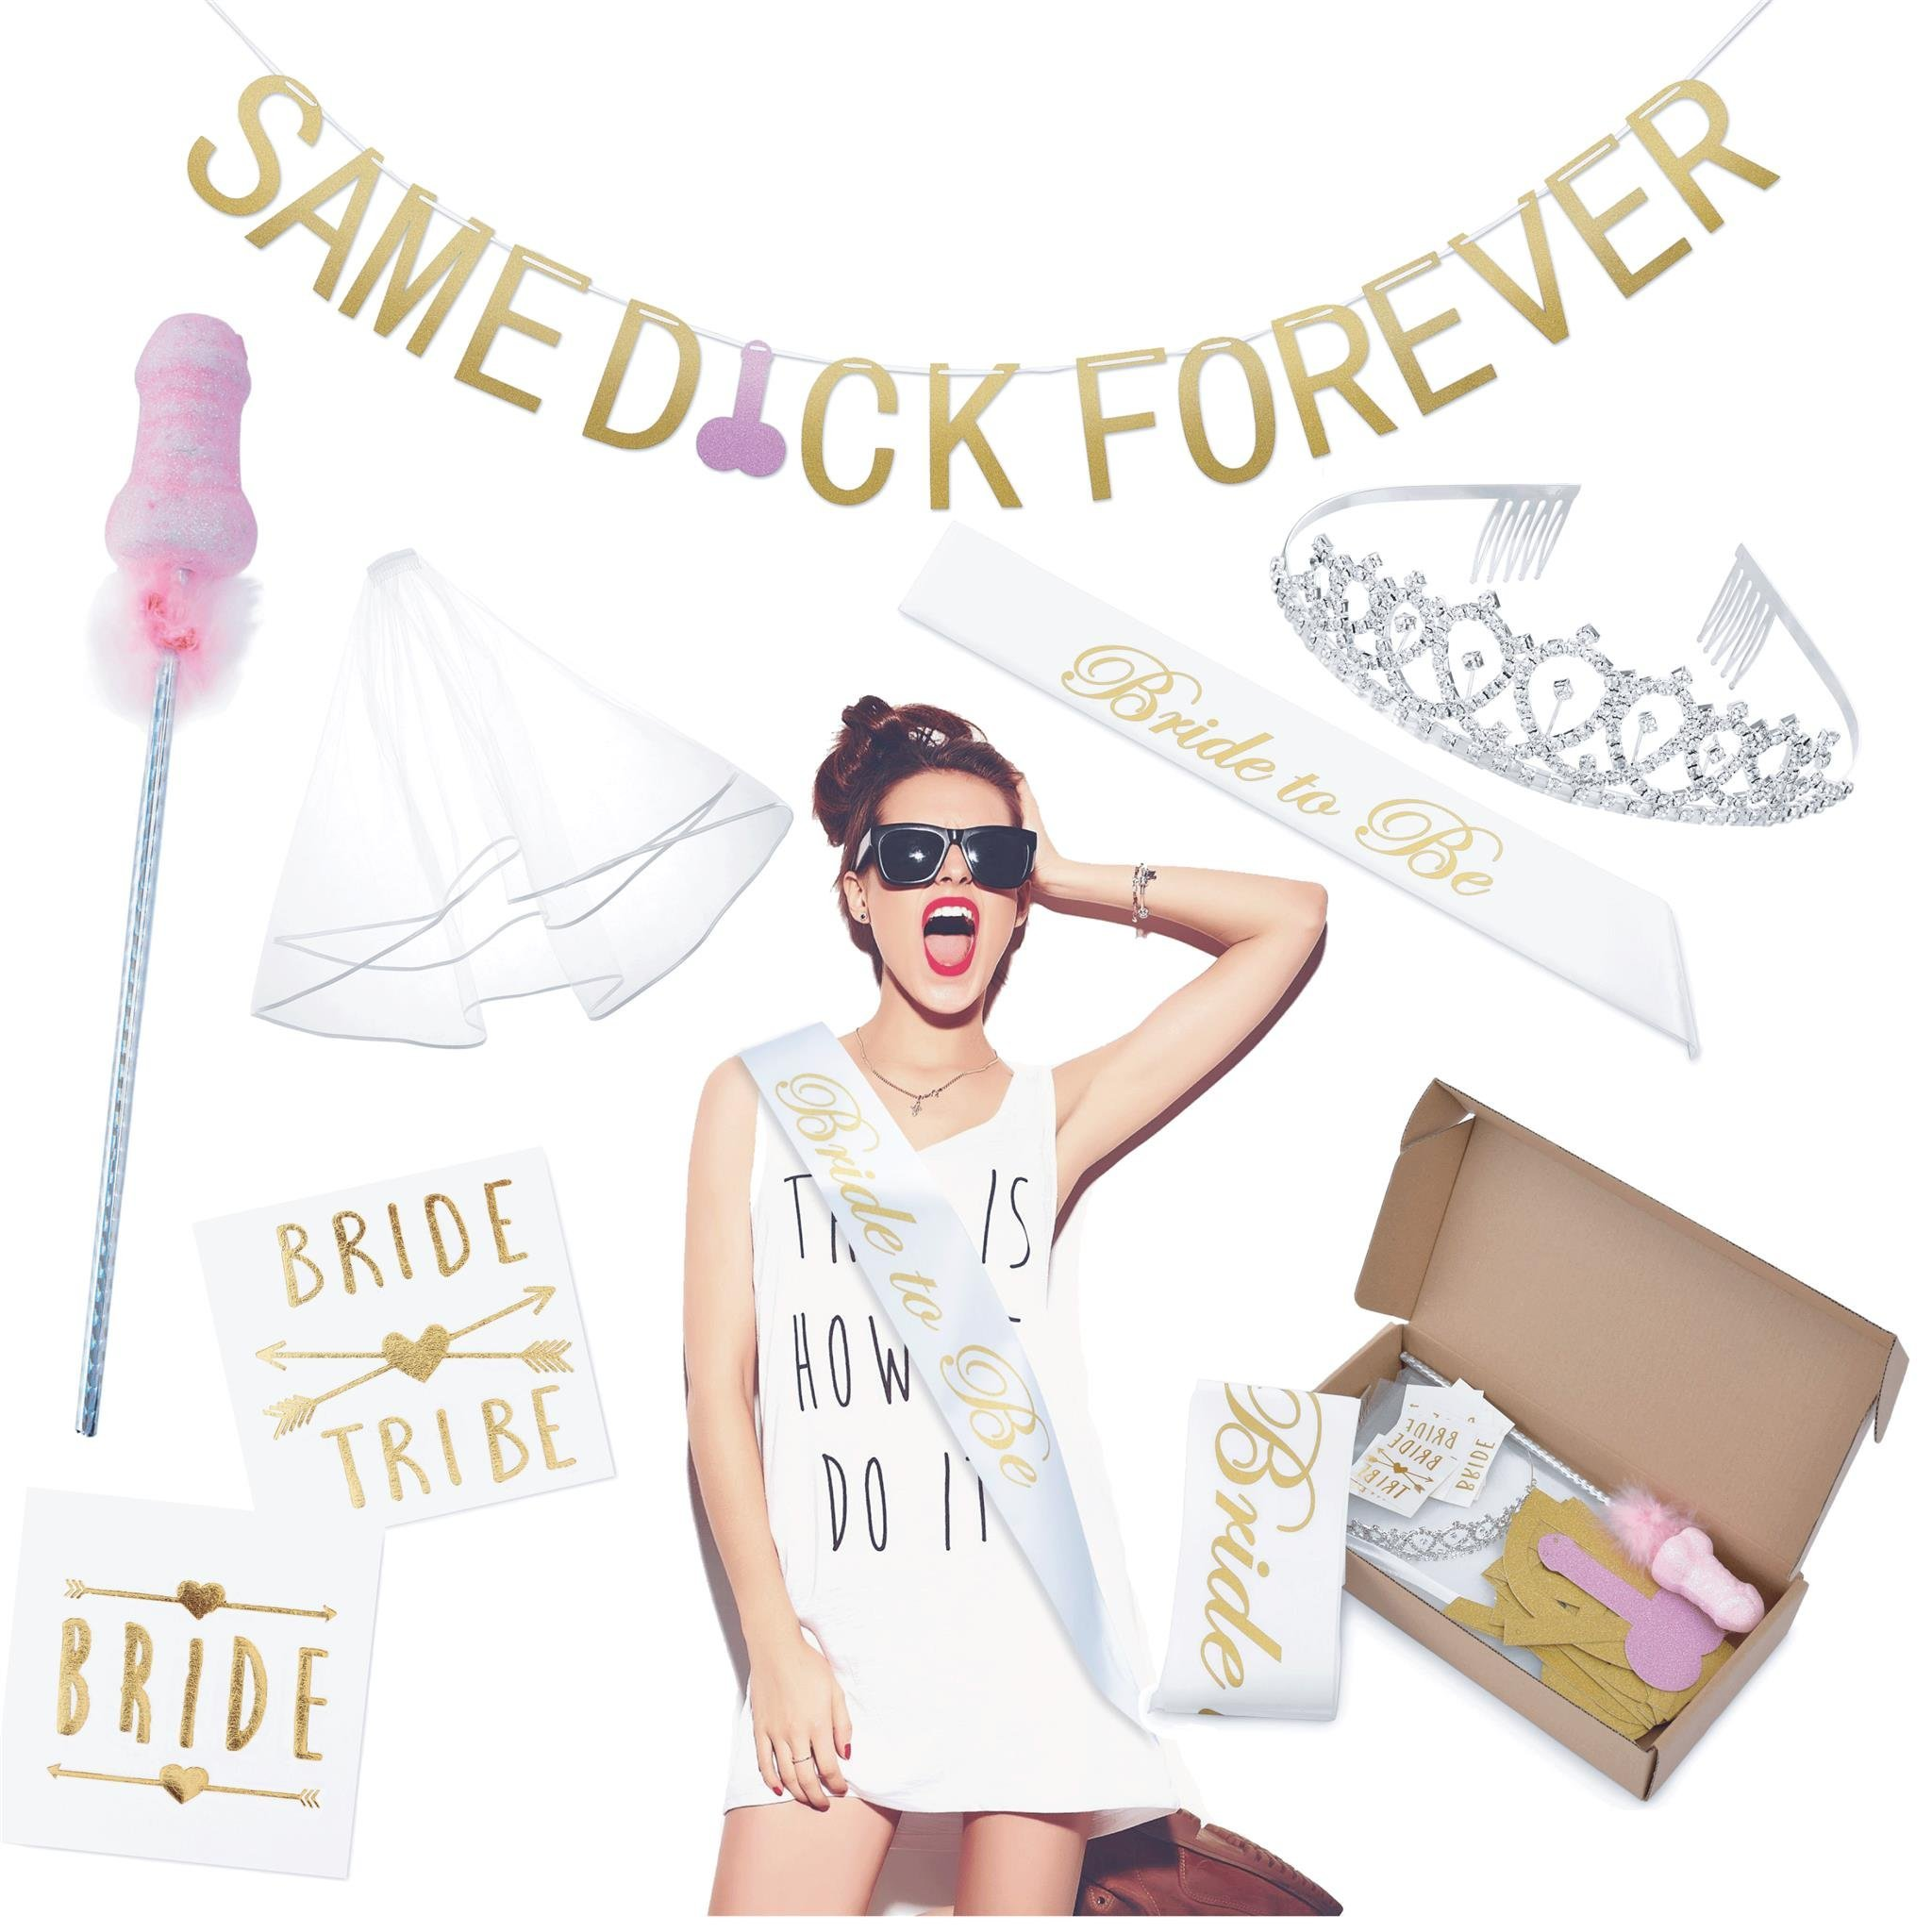 Bachelorette Party Supplies Kit: Bridal Shower Decoration Set, Naughty Hen Party Decor - Bridal Sash, Tattoos, Veil, Rose Gold Same D Forever Banner & Dirty Wand for Bride to be & Bridesmaids by MERRI